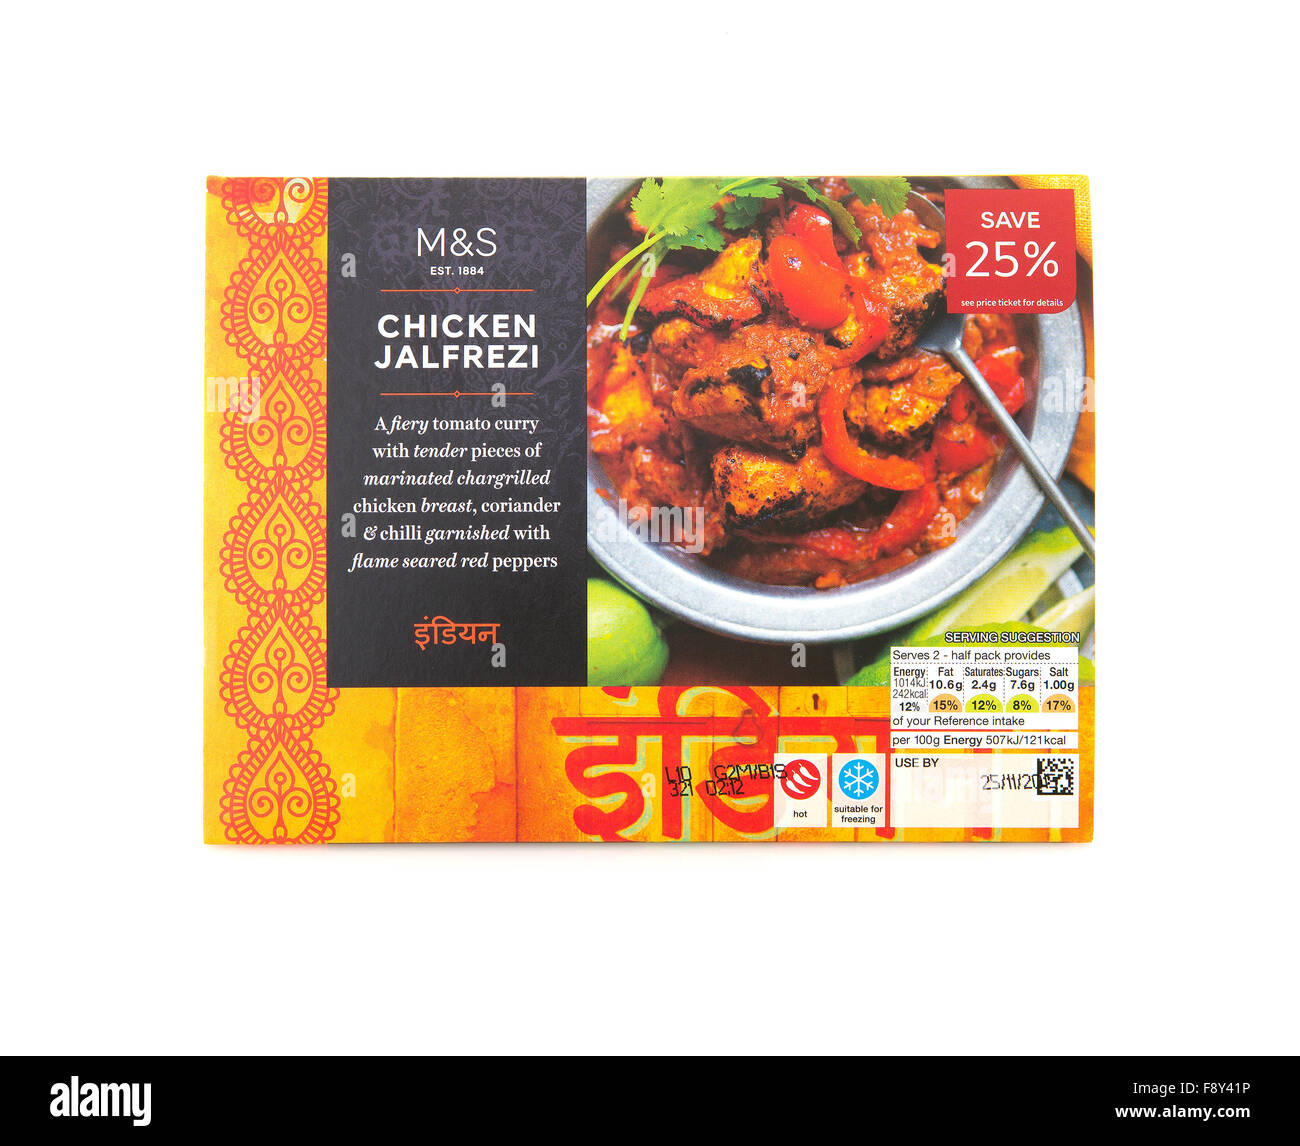 Marks and spencer chicken jalfrezi curry indian take away curry on marks and spencer chicken jalfrezi curry indian take away curry on a white background forumfinder Choice Image